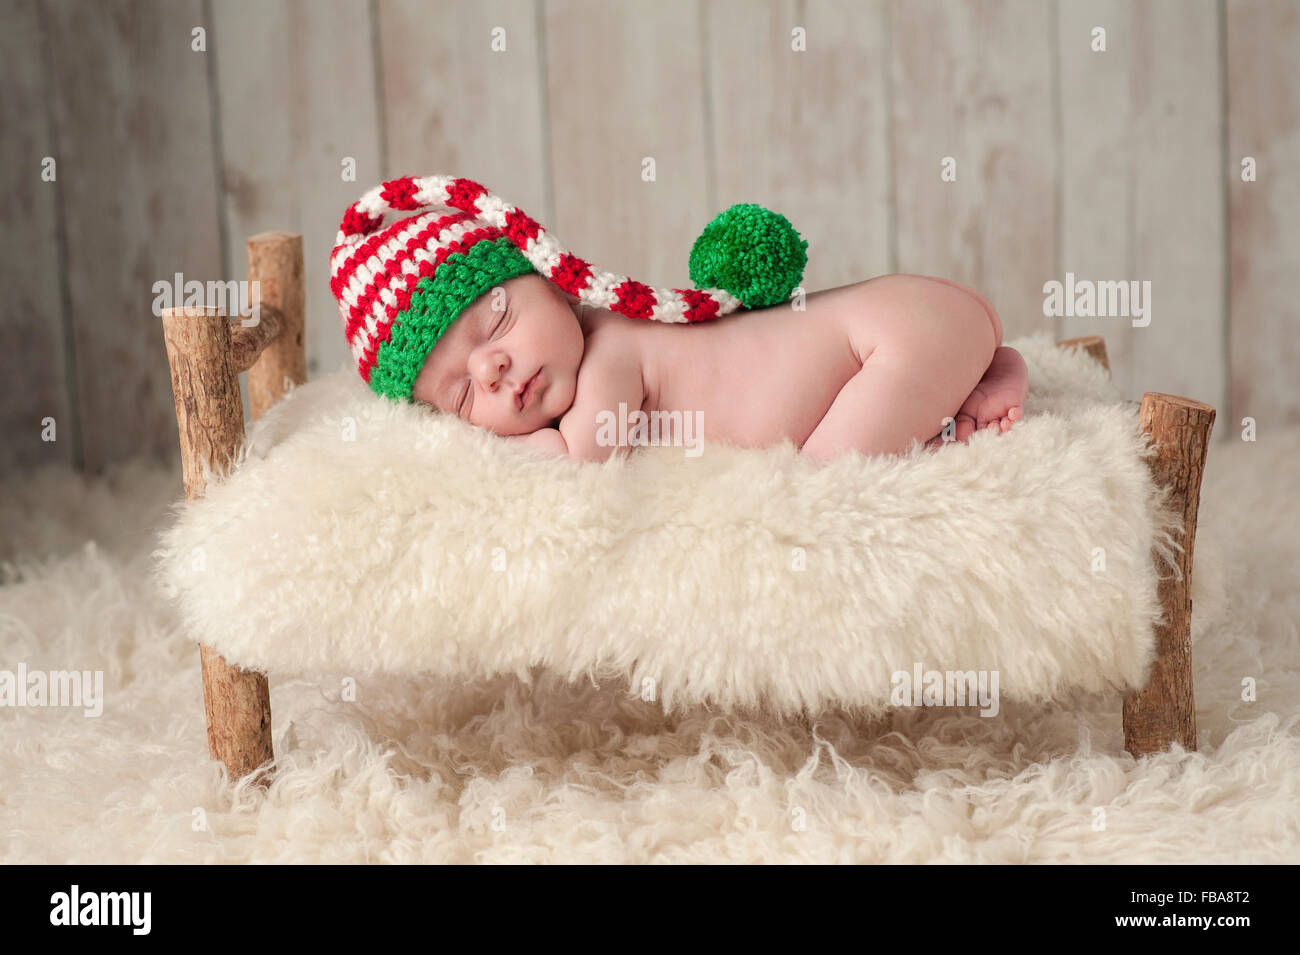 ce5580e0b71 Newborn Baby Boy Wearing a Christmas Elf Hat - Stock Image